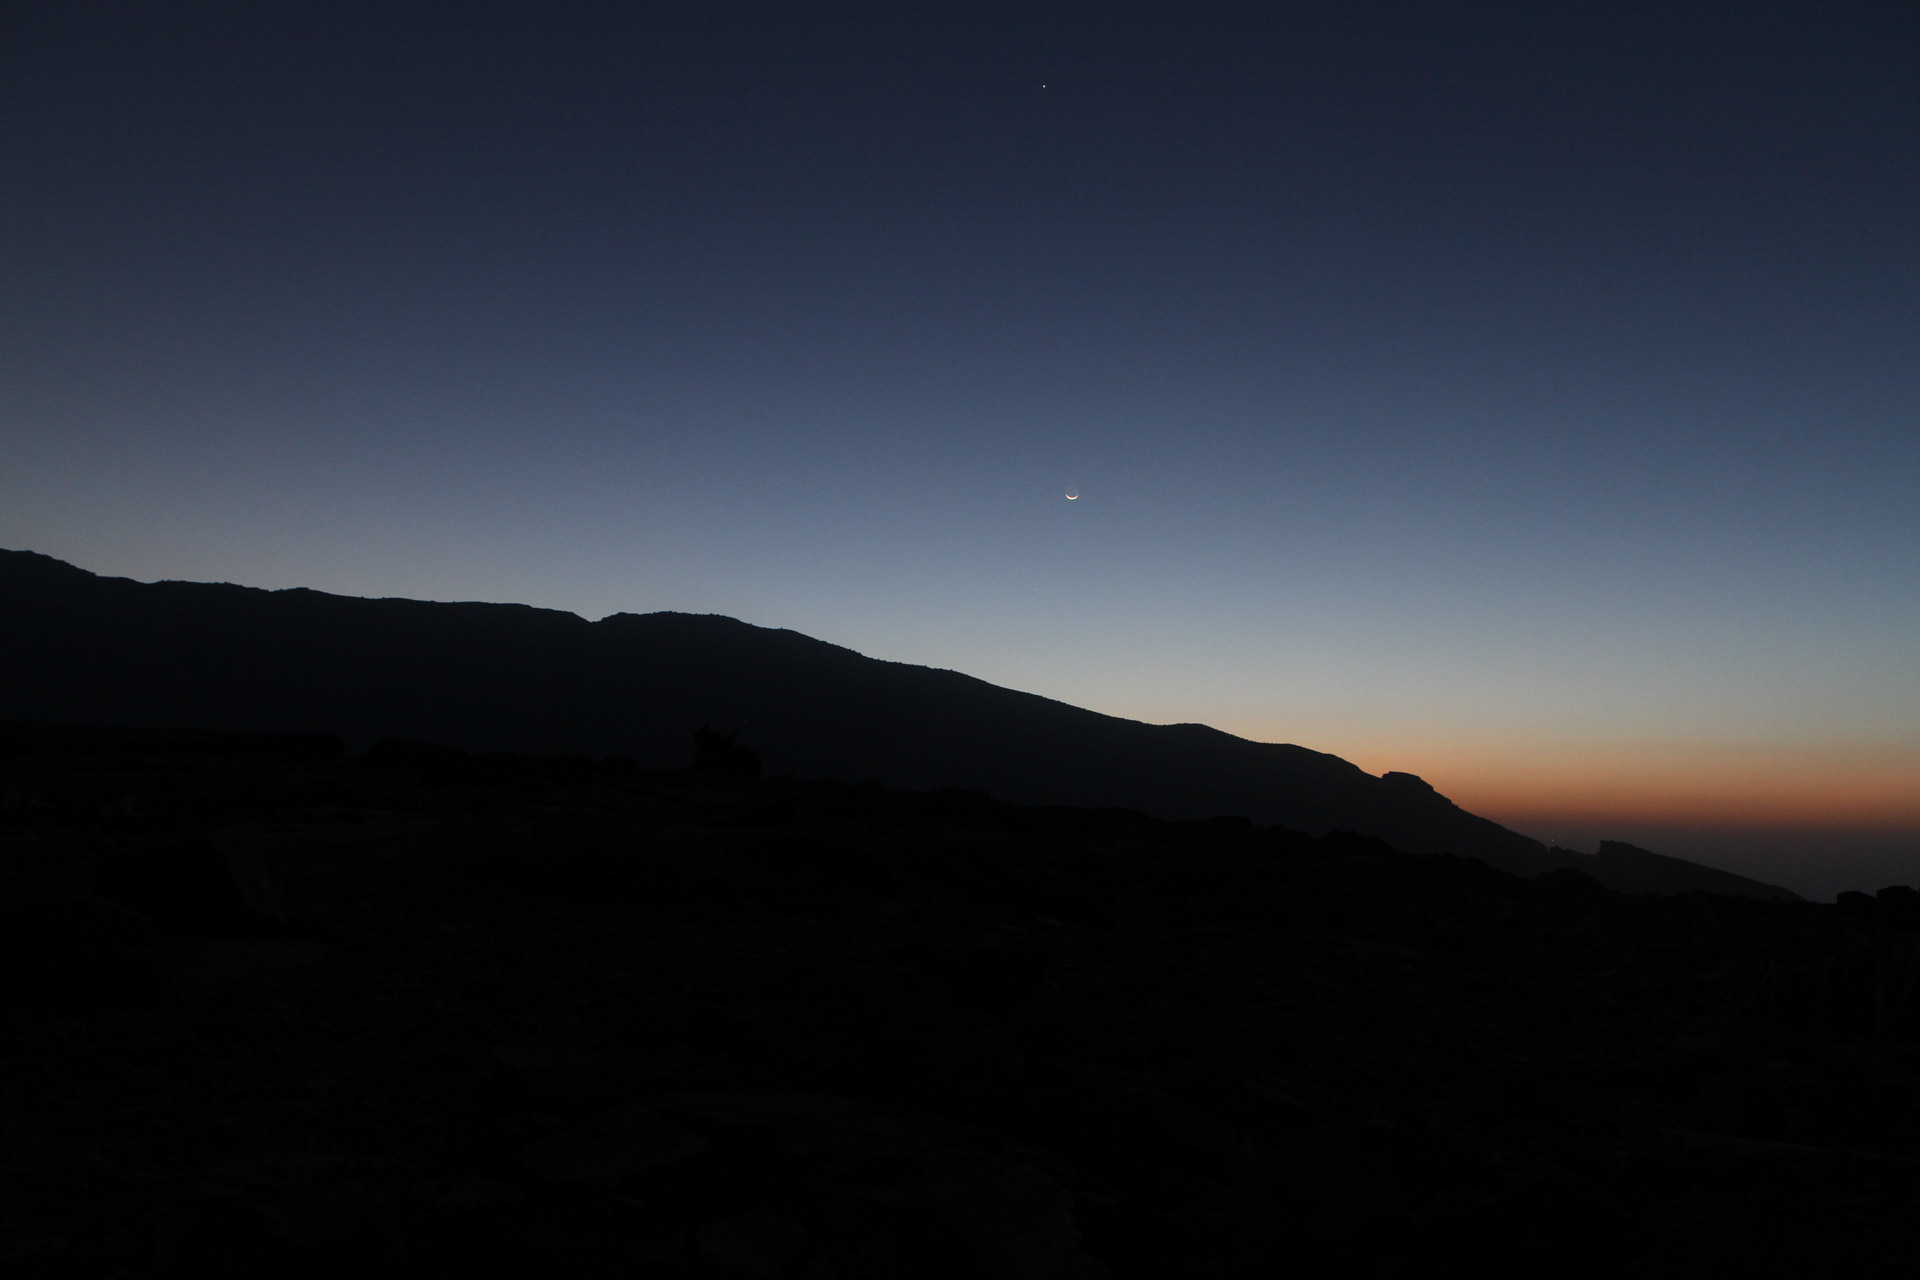 Sunrise of the Hajdar Mountains with a very small moon.